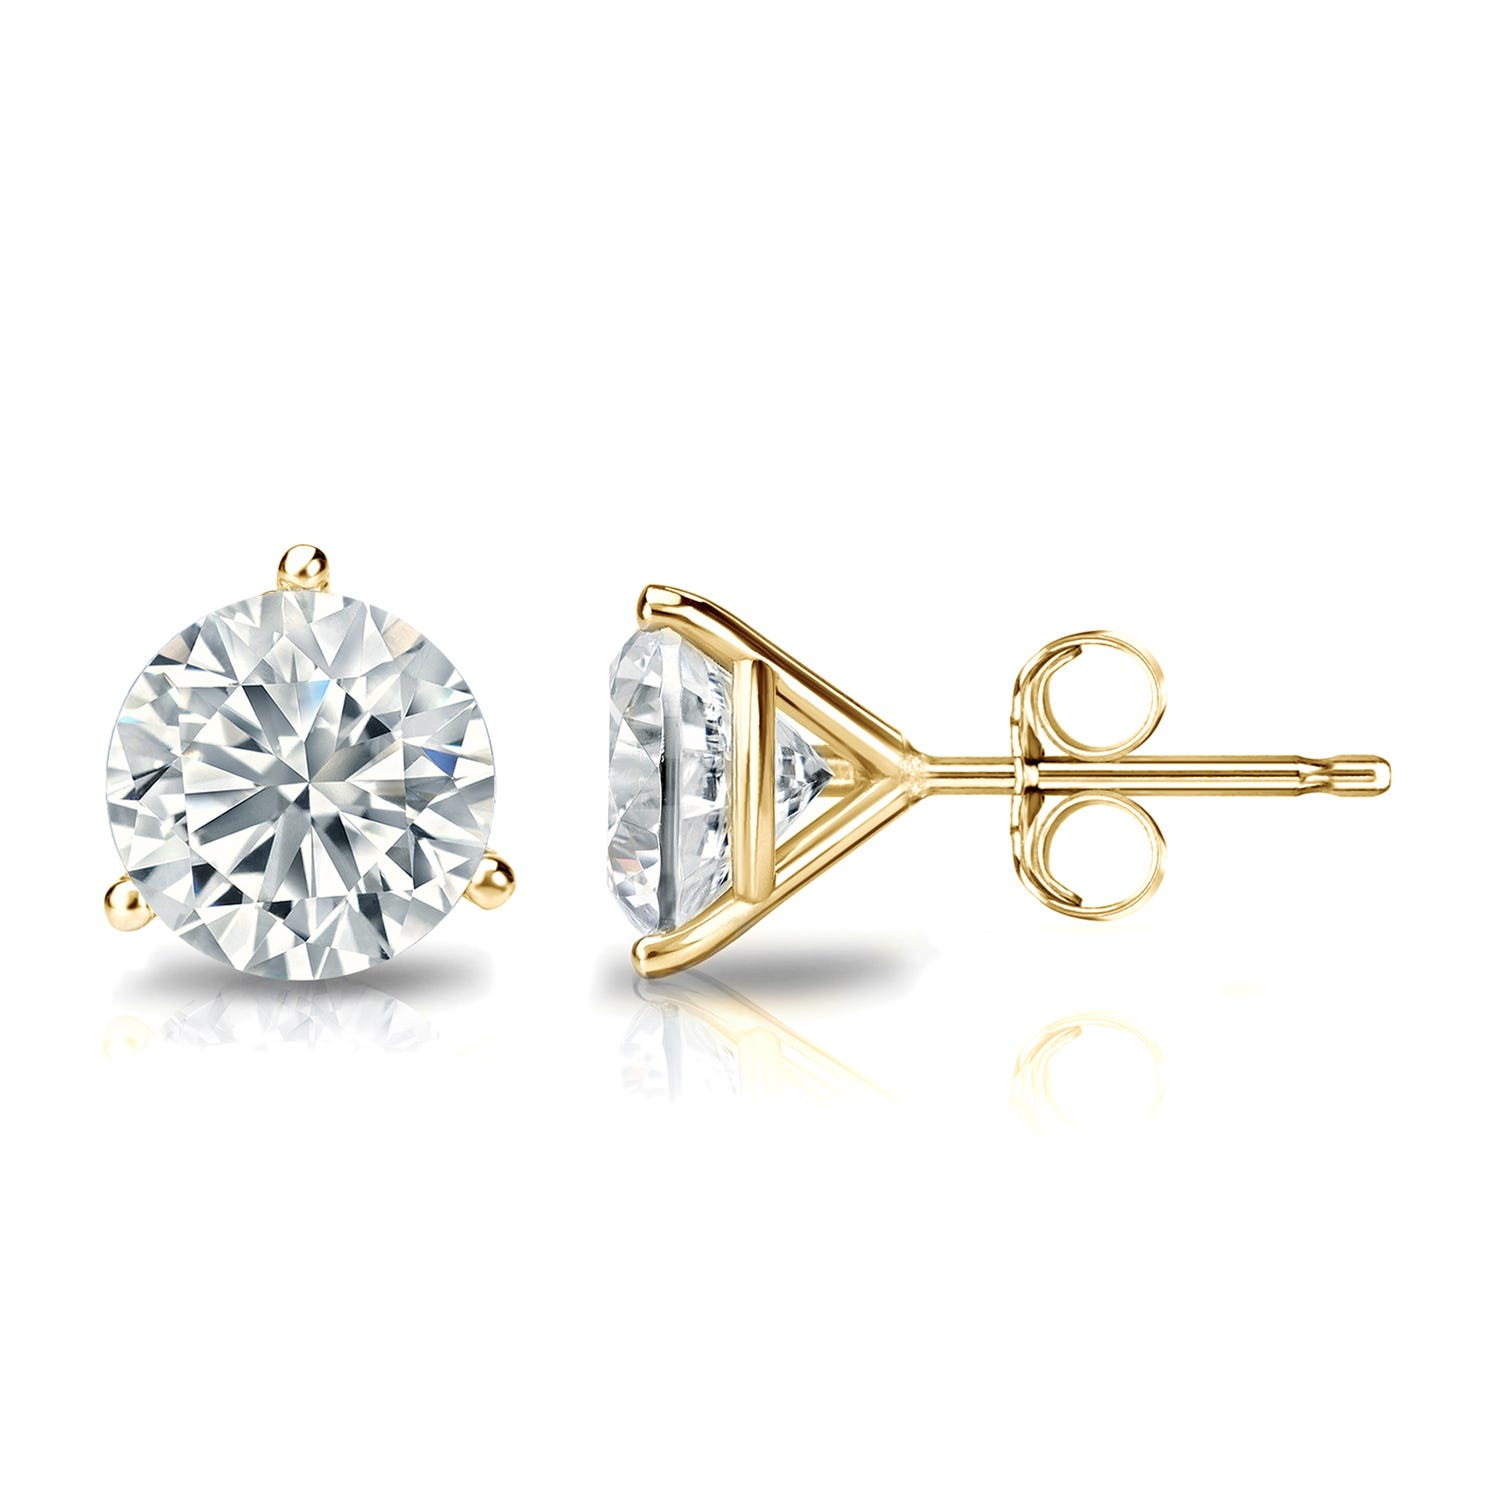 1-1/2 CTTW Round Diamond Solitaire Stud Earrings IJ SI1 in 14K Yellow Gold IGI Certified 3-Prong Setting